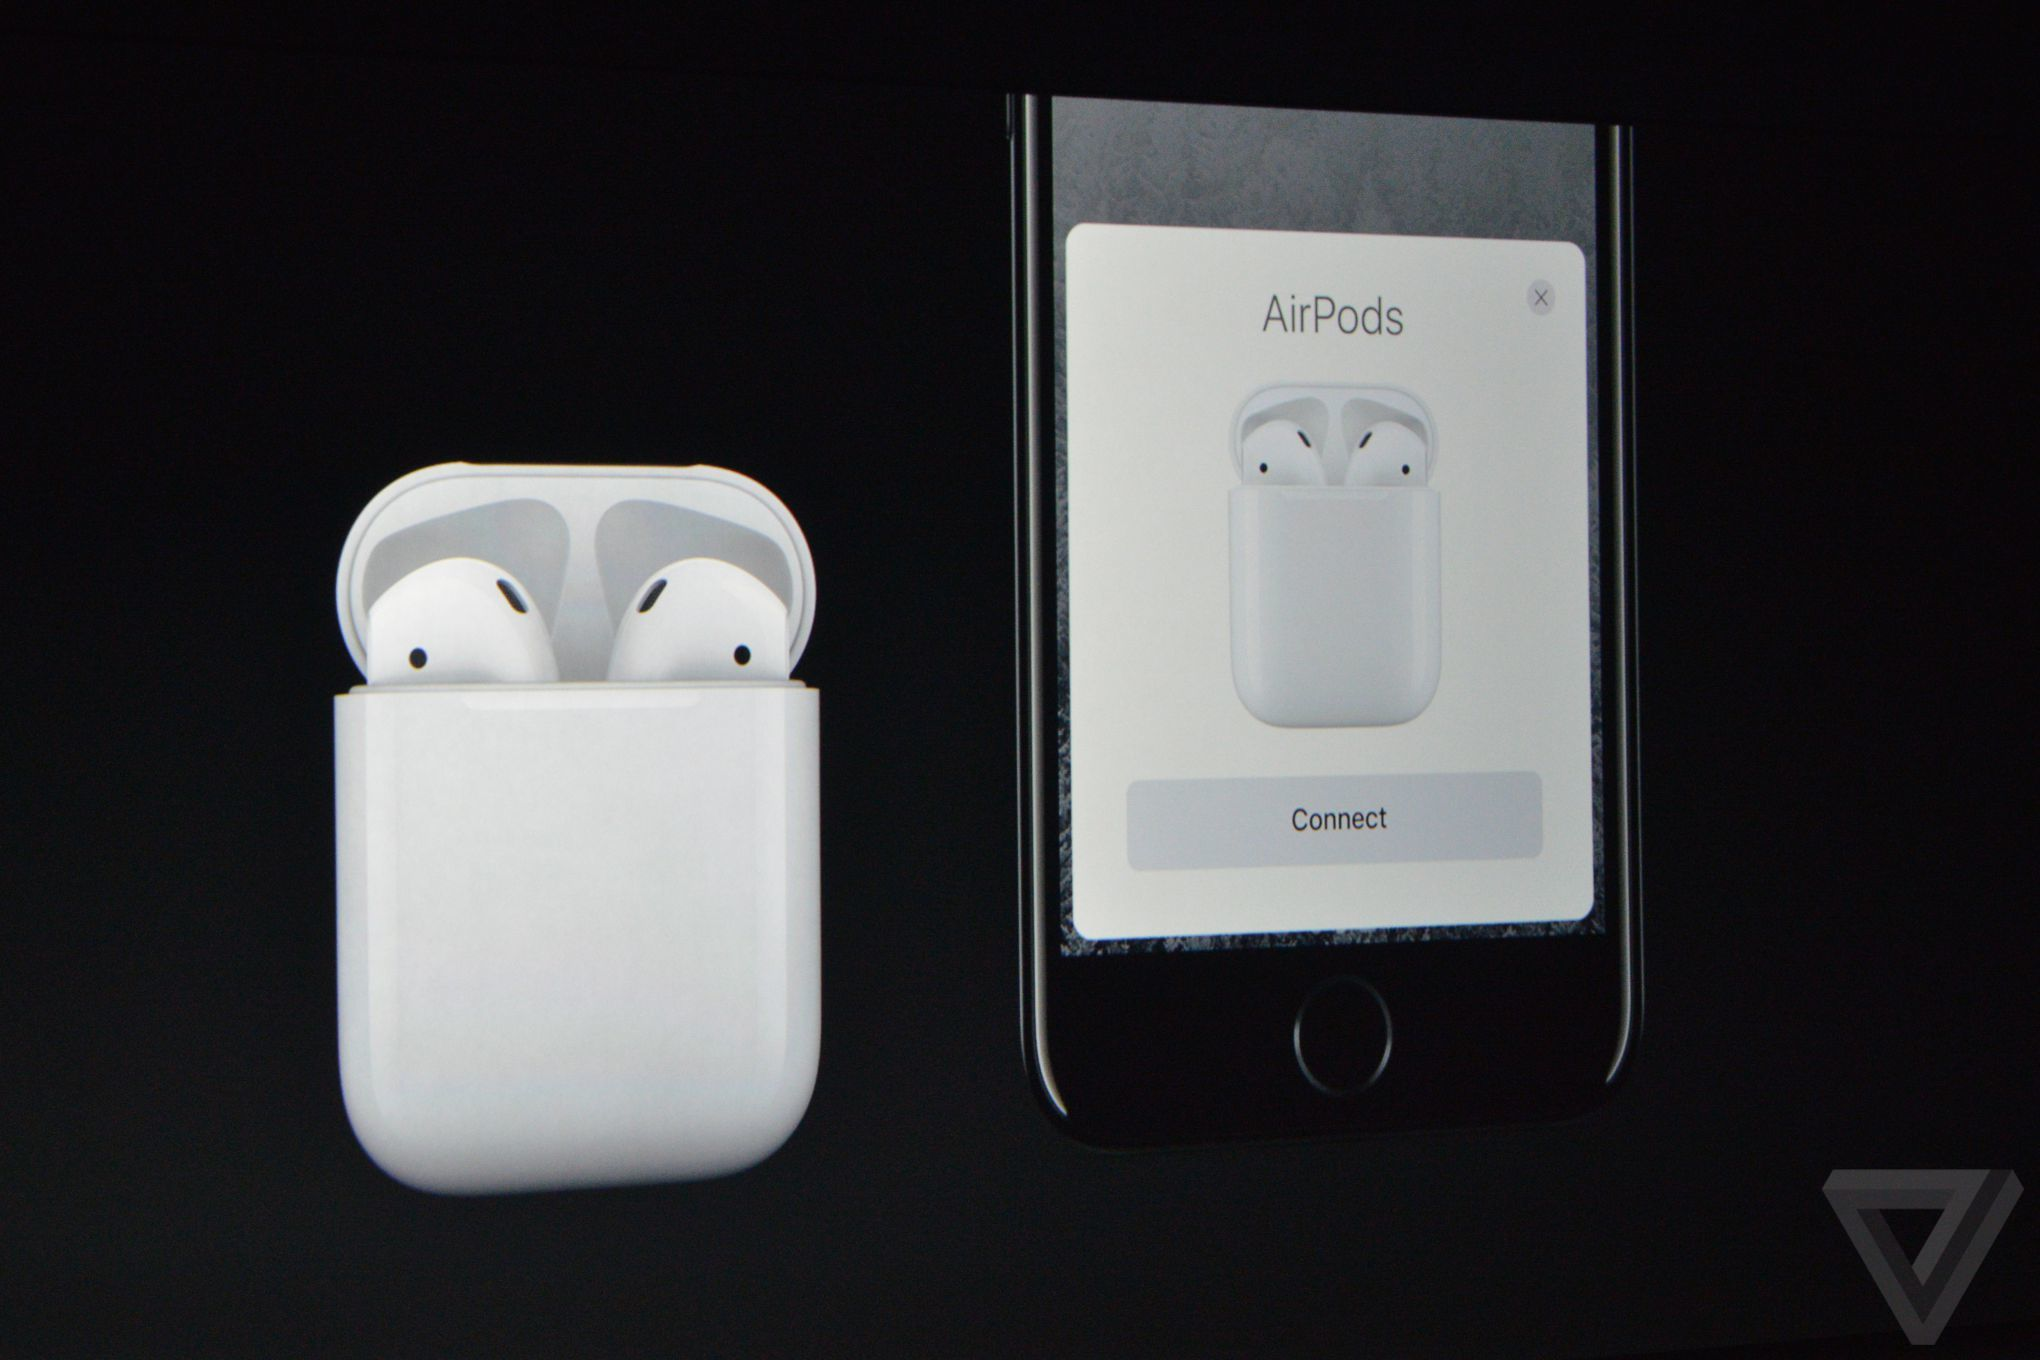 airpods-connect.jpg